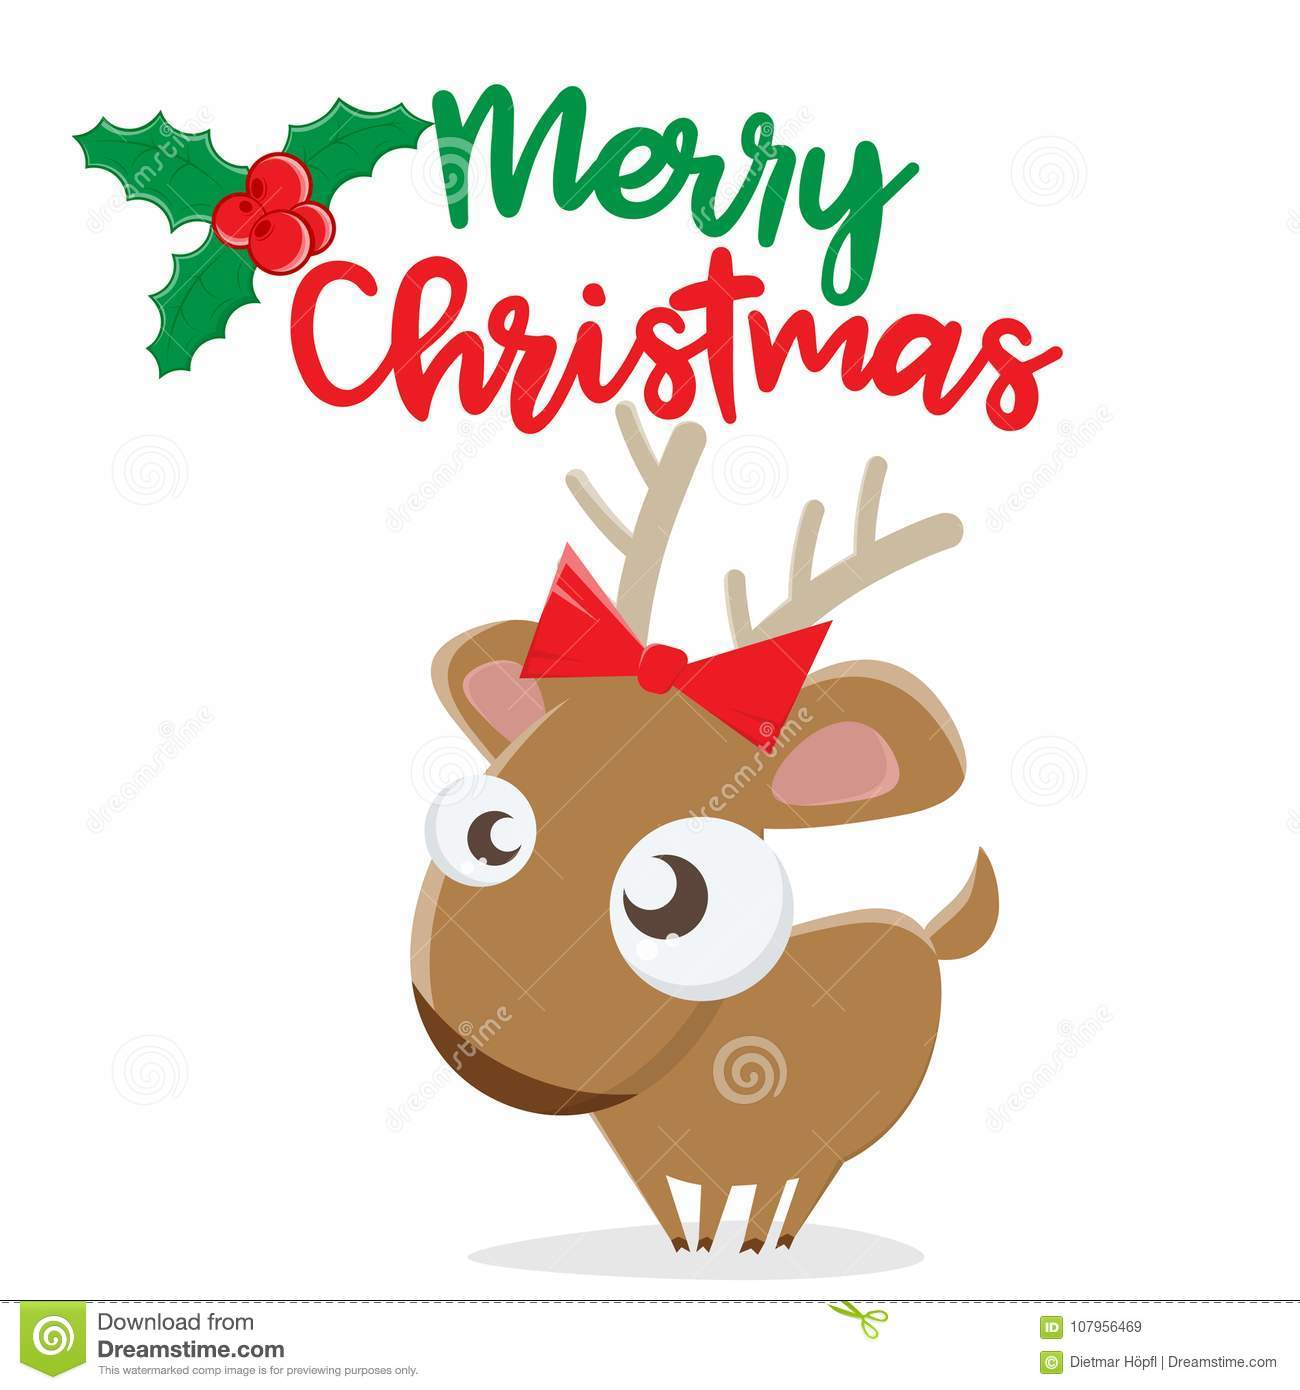 Merry Christmas Reindeer Clipart Stock Vector.